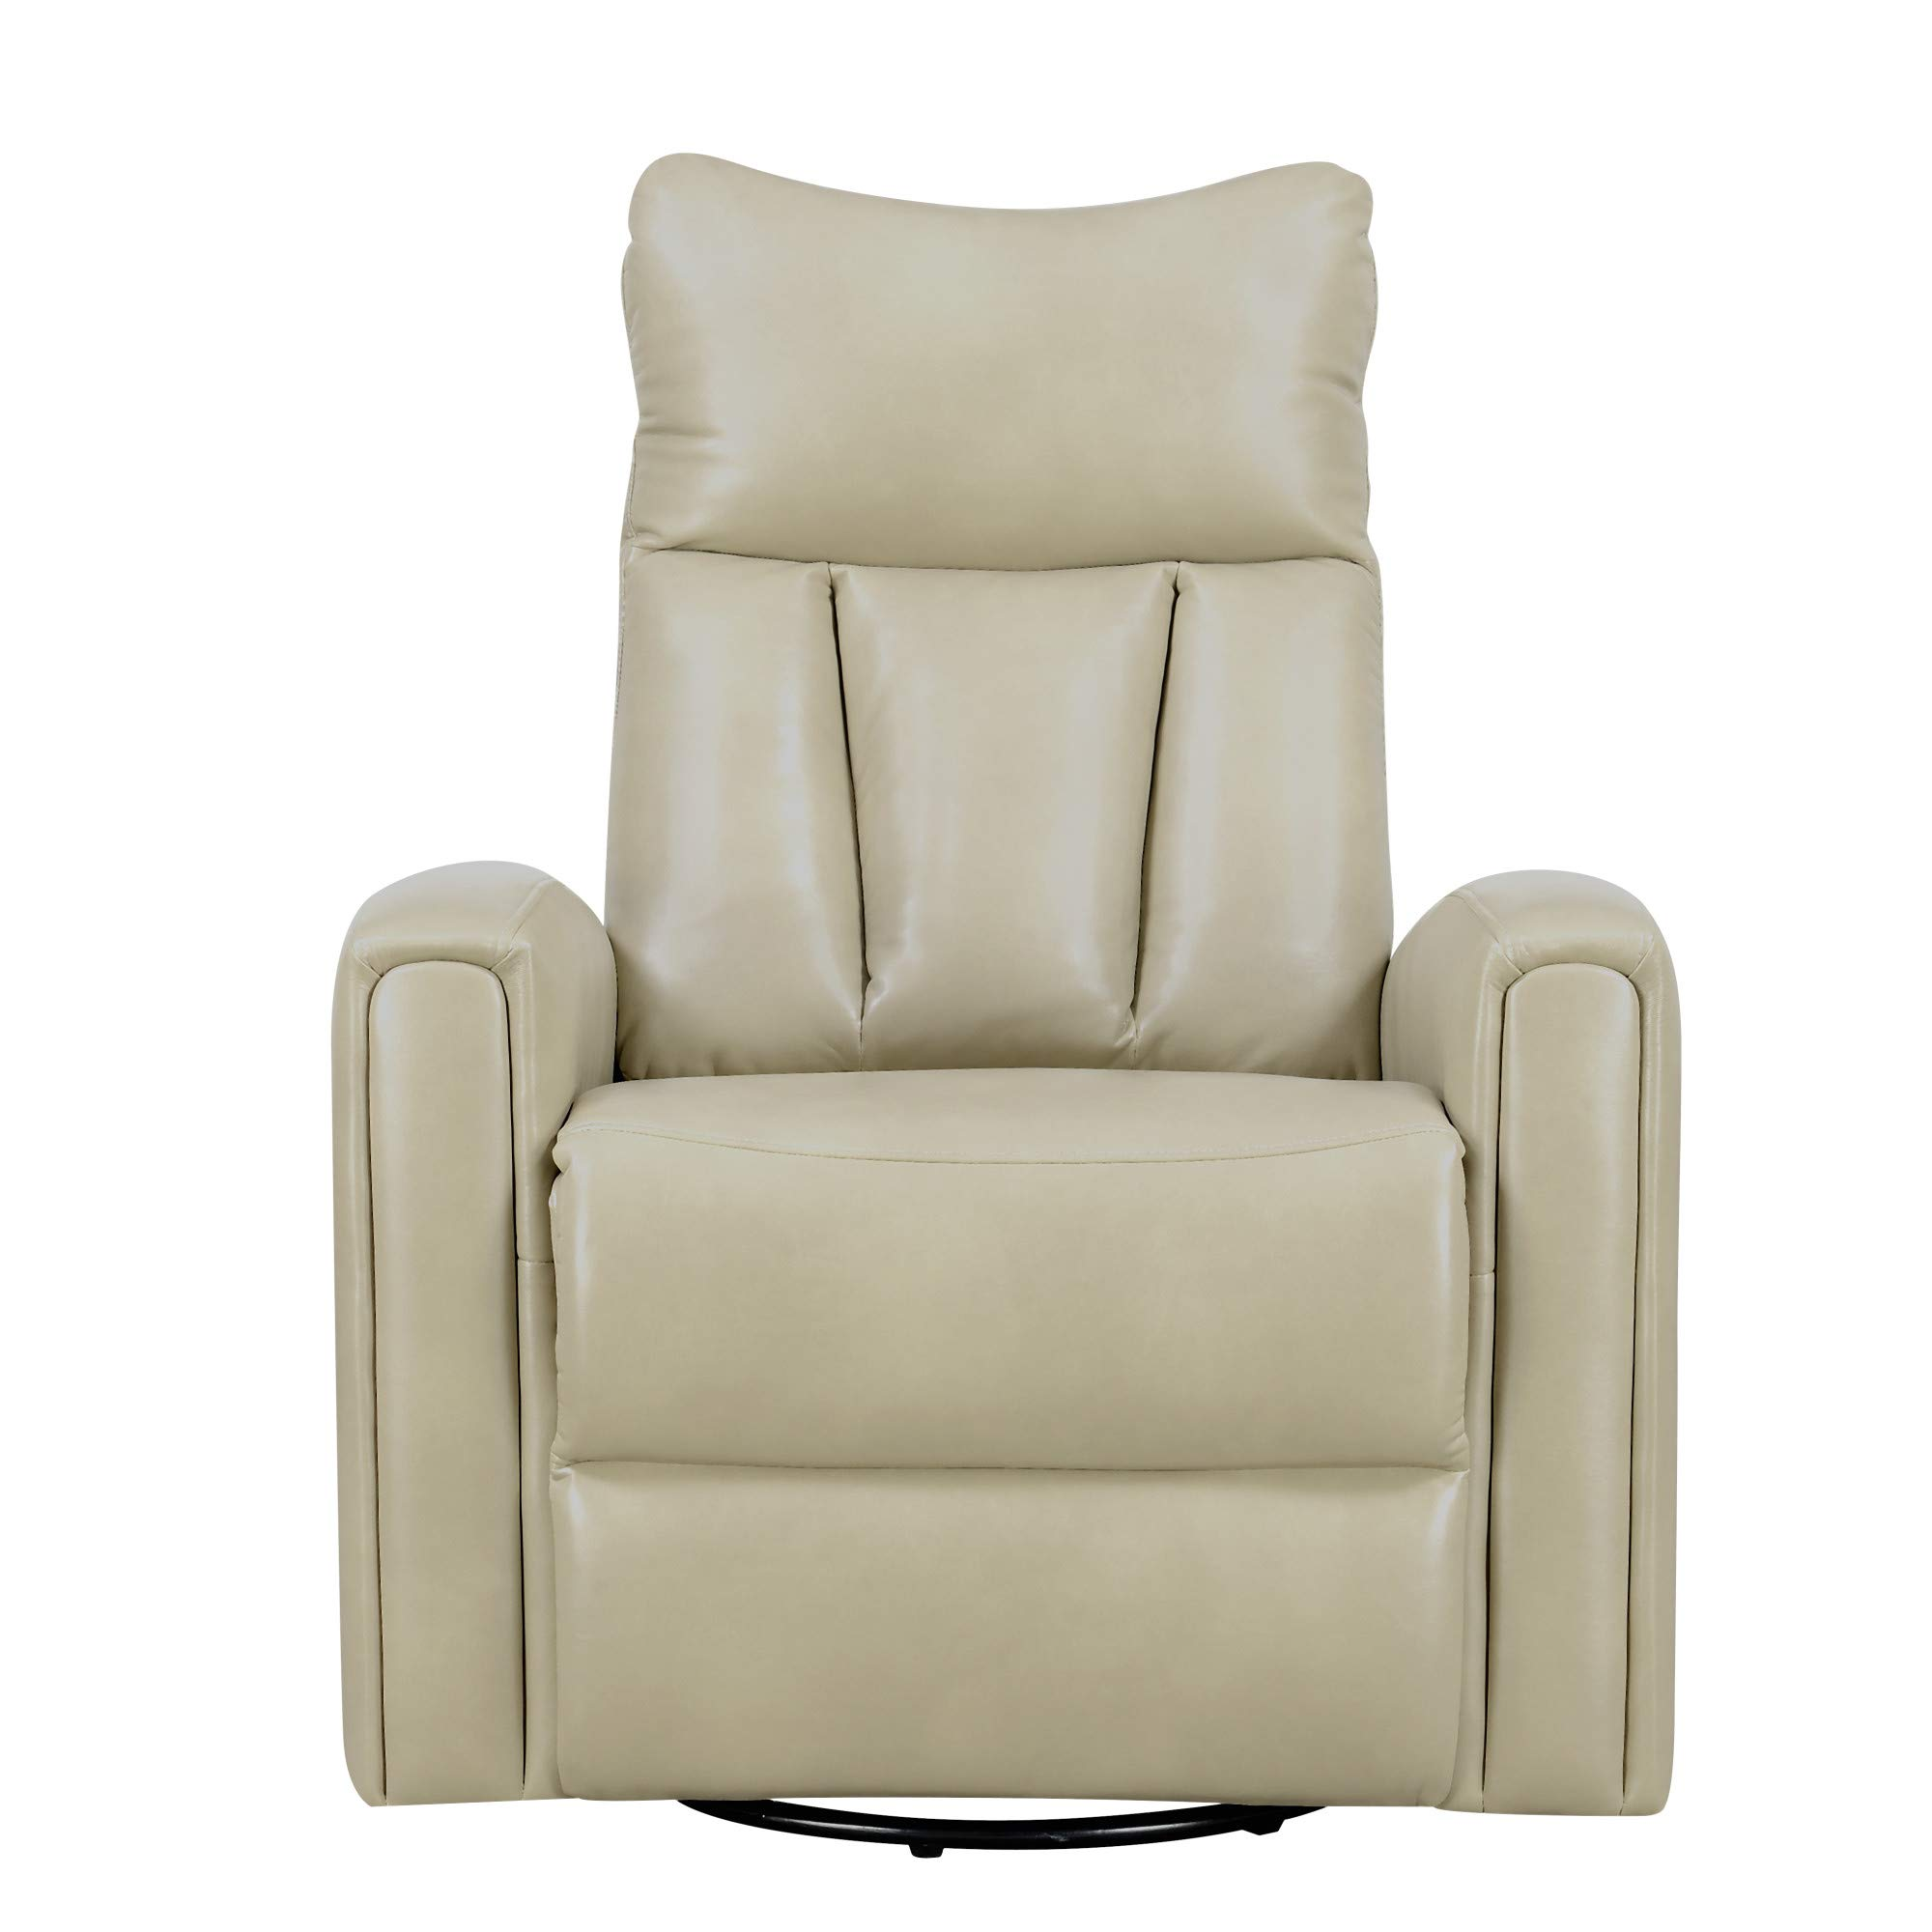 Anders Swivel Reclining Glider in Beige with Faux Leather Upholstery And Swivel Recliner, by Artum Hill